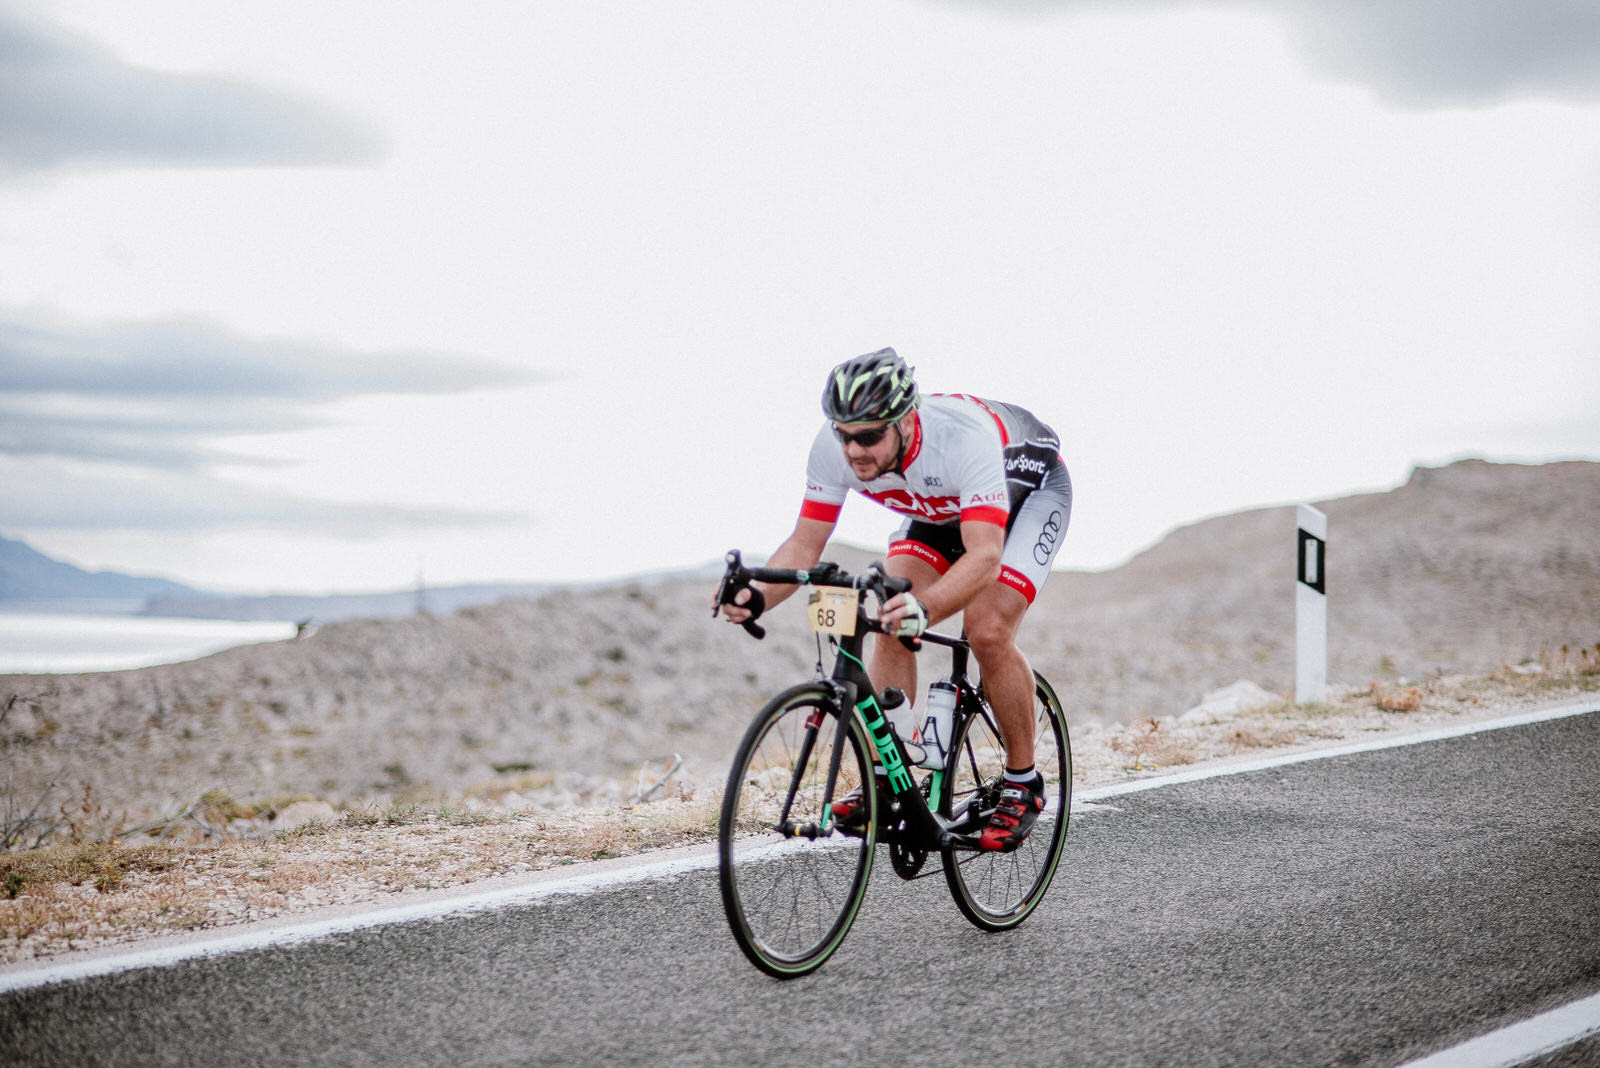 likaclub_Granfondo-Pag-–-Cycling-on-the-Moon_2019-28